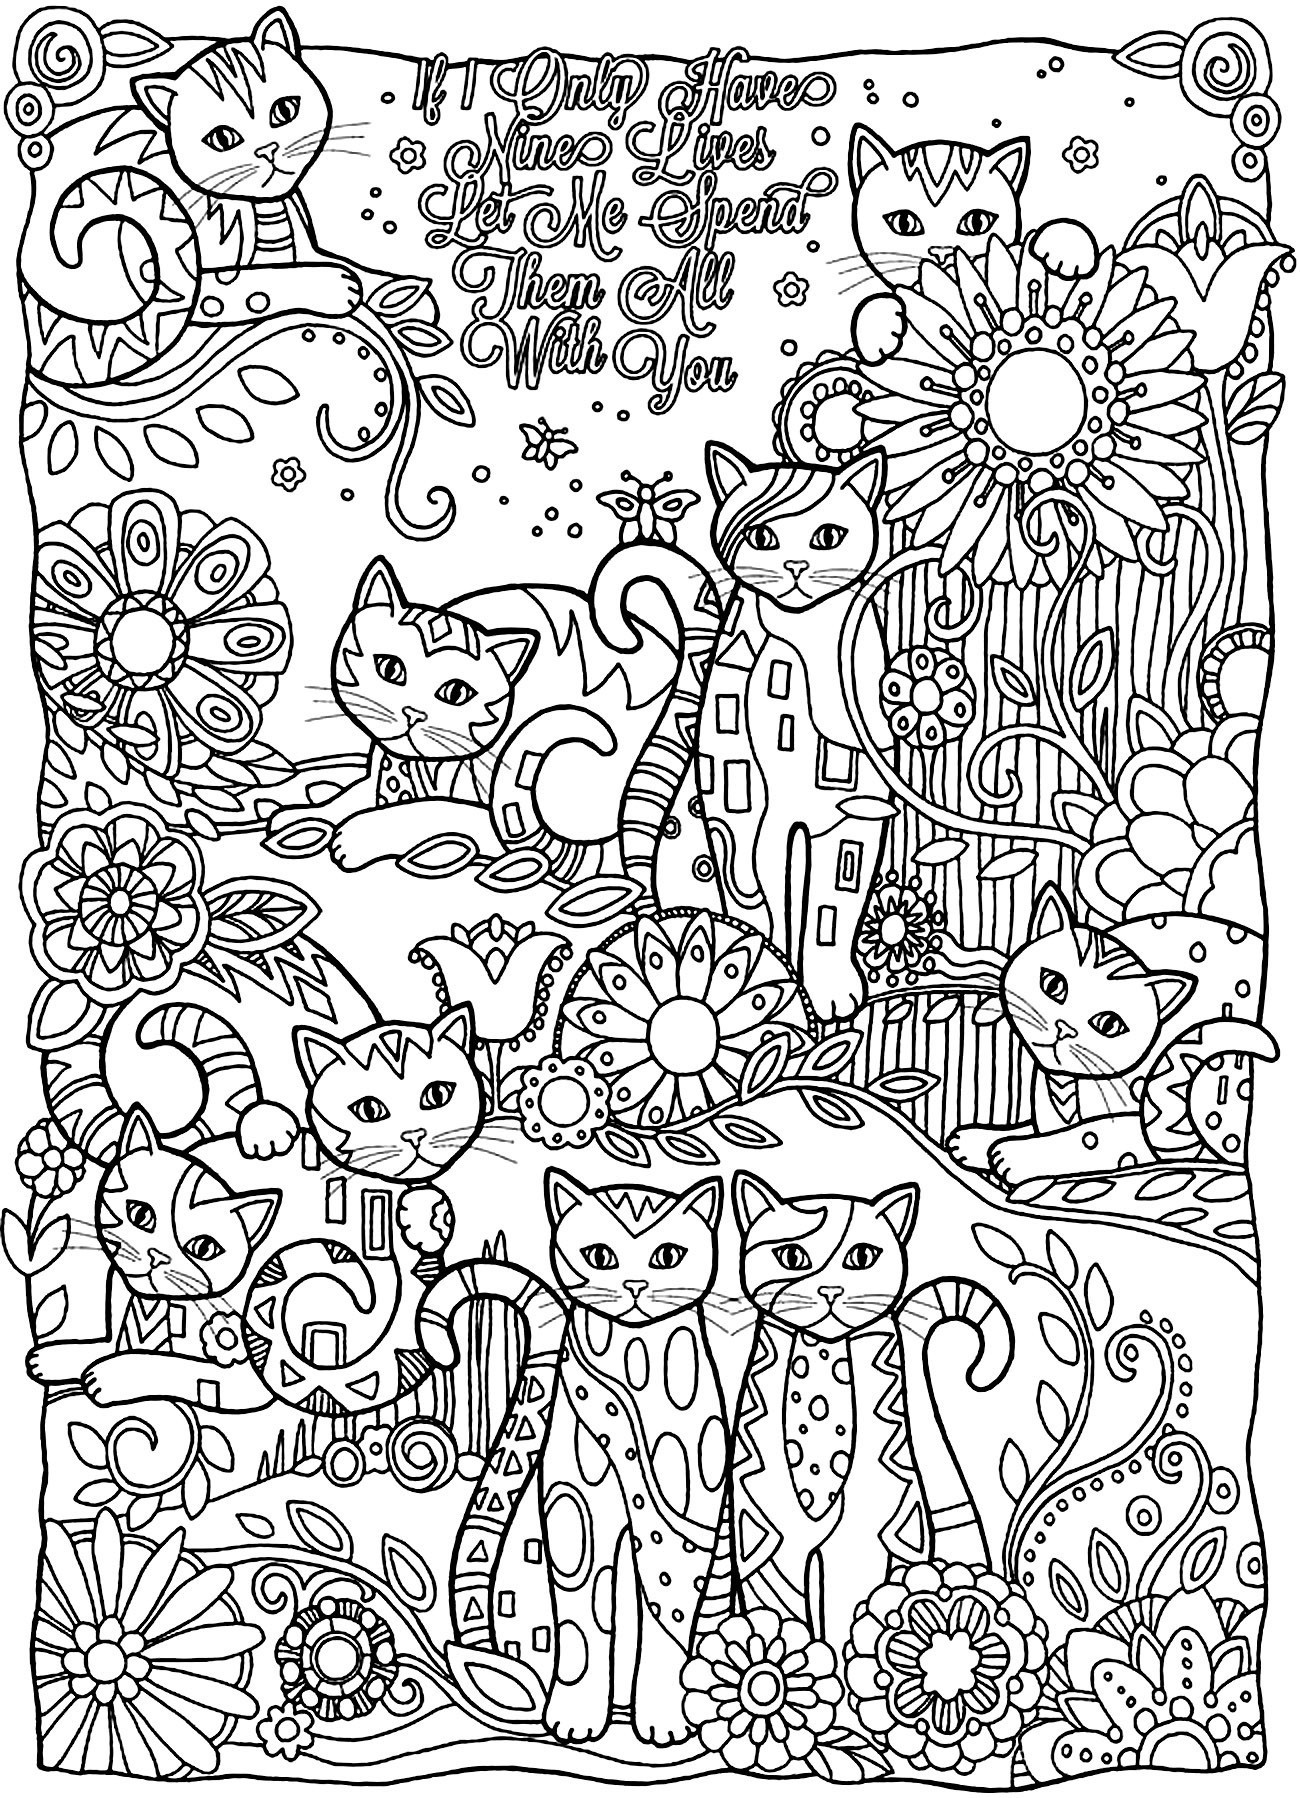 Christmas Zentangle Coloring With Free Printable Pages Awesome